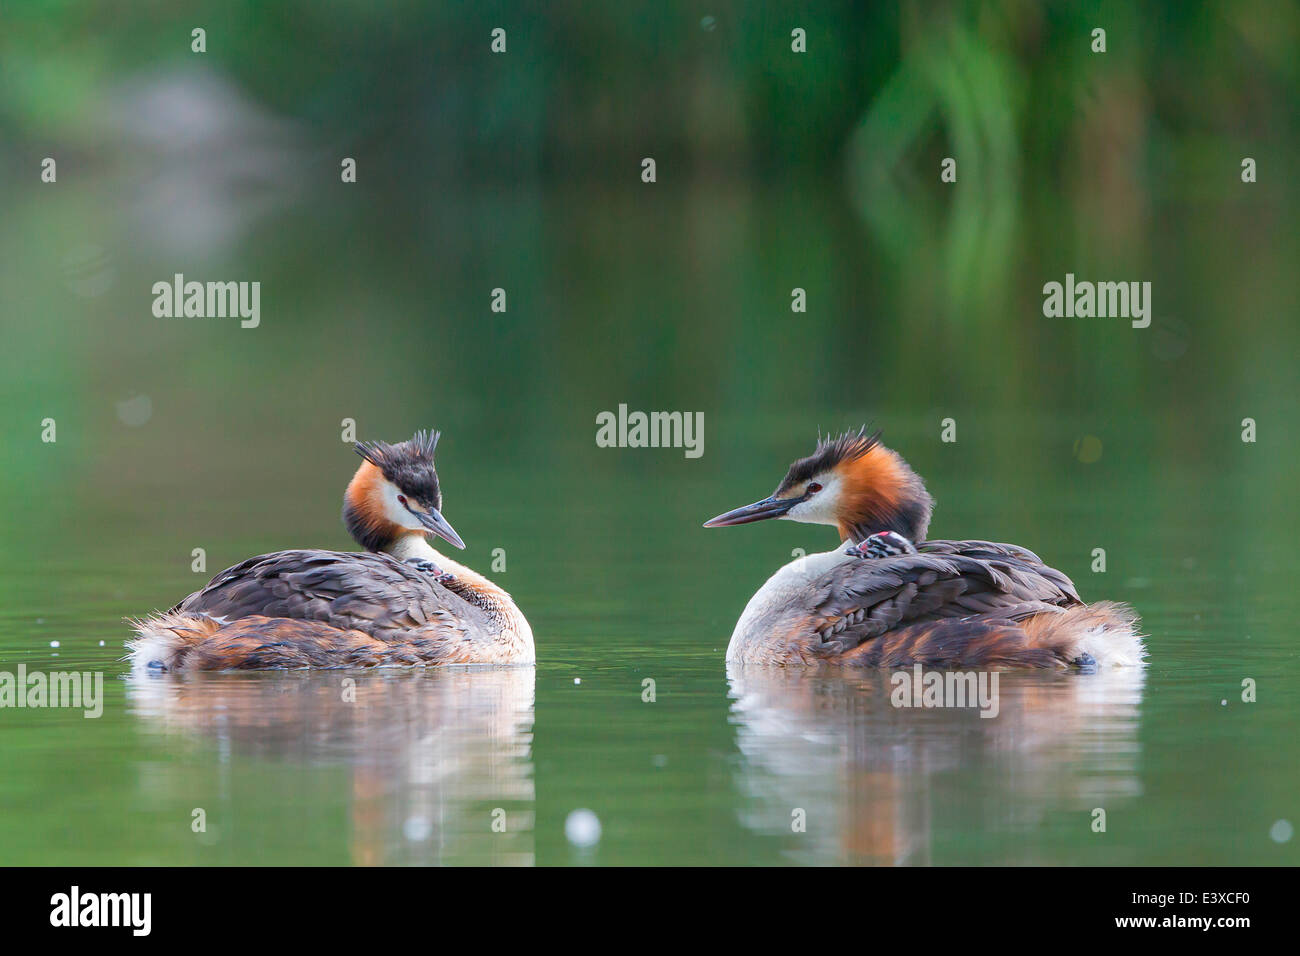 Two Great Crested Grebes (Podiceps cristatus) with chicks in plumage, North Hesse, Hesse, Germany - Stock Image